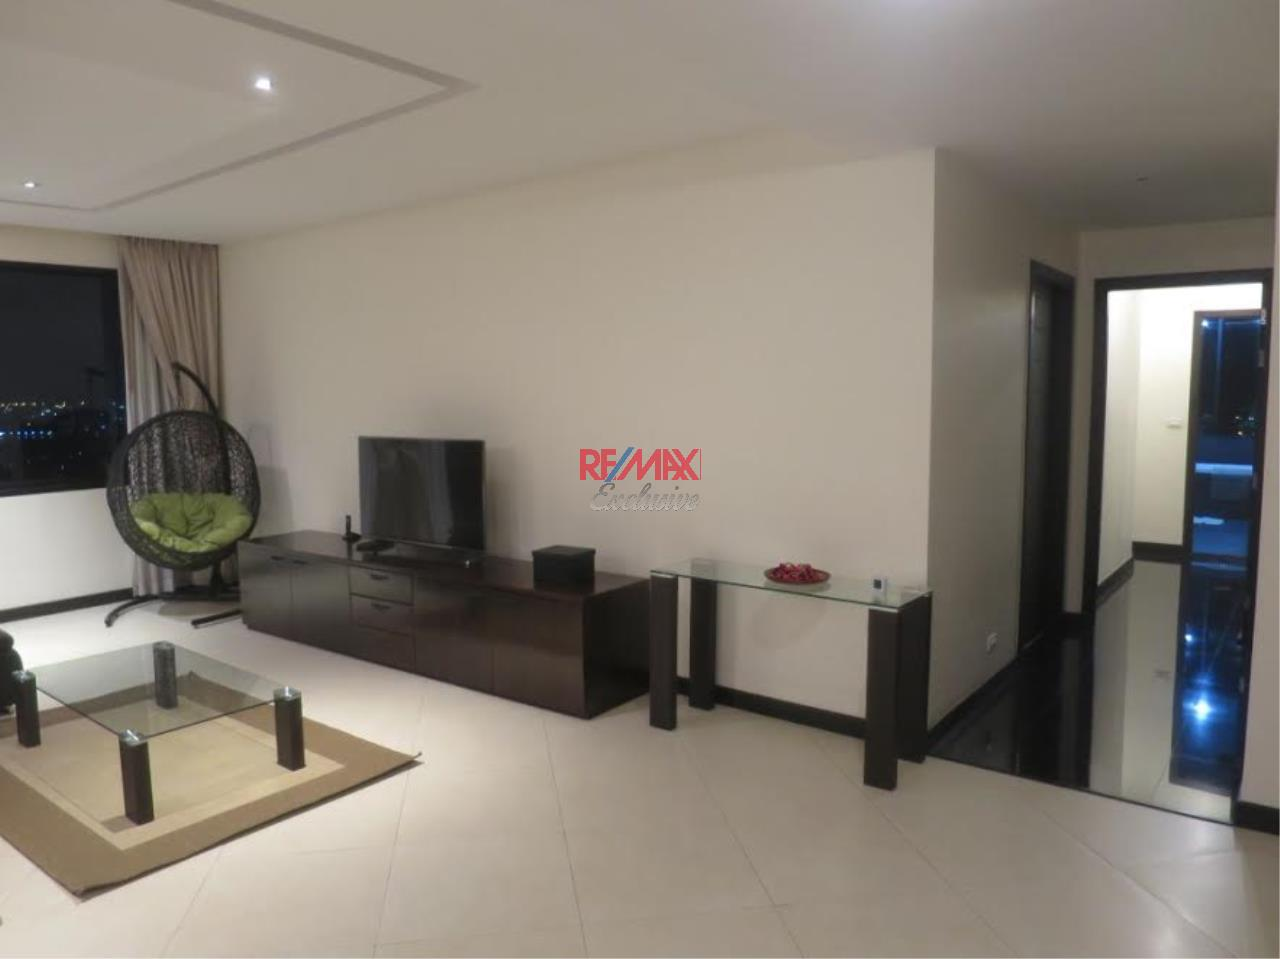 RE/MAX Exclusive Agency's Royal River Place Condo, 3 Bedrooms, 3 Bathrooms, Only For Sale 20,000,000 THB 1